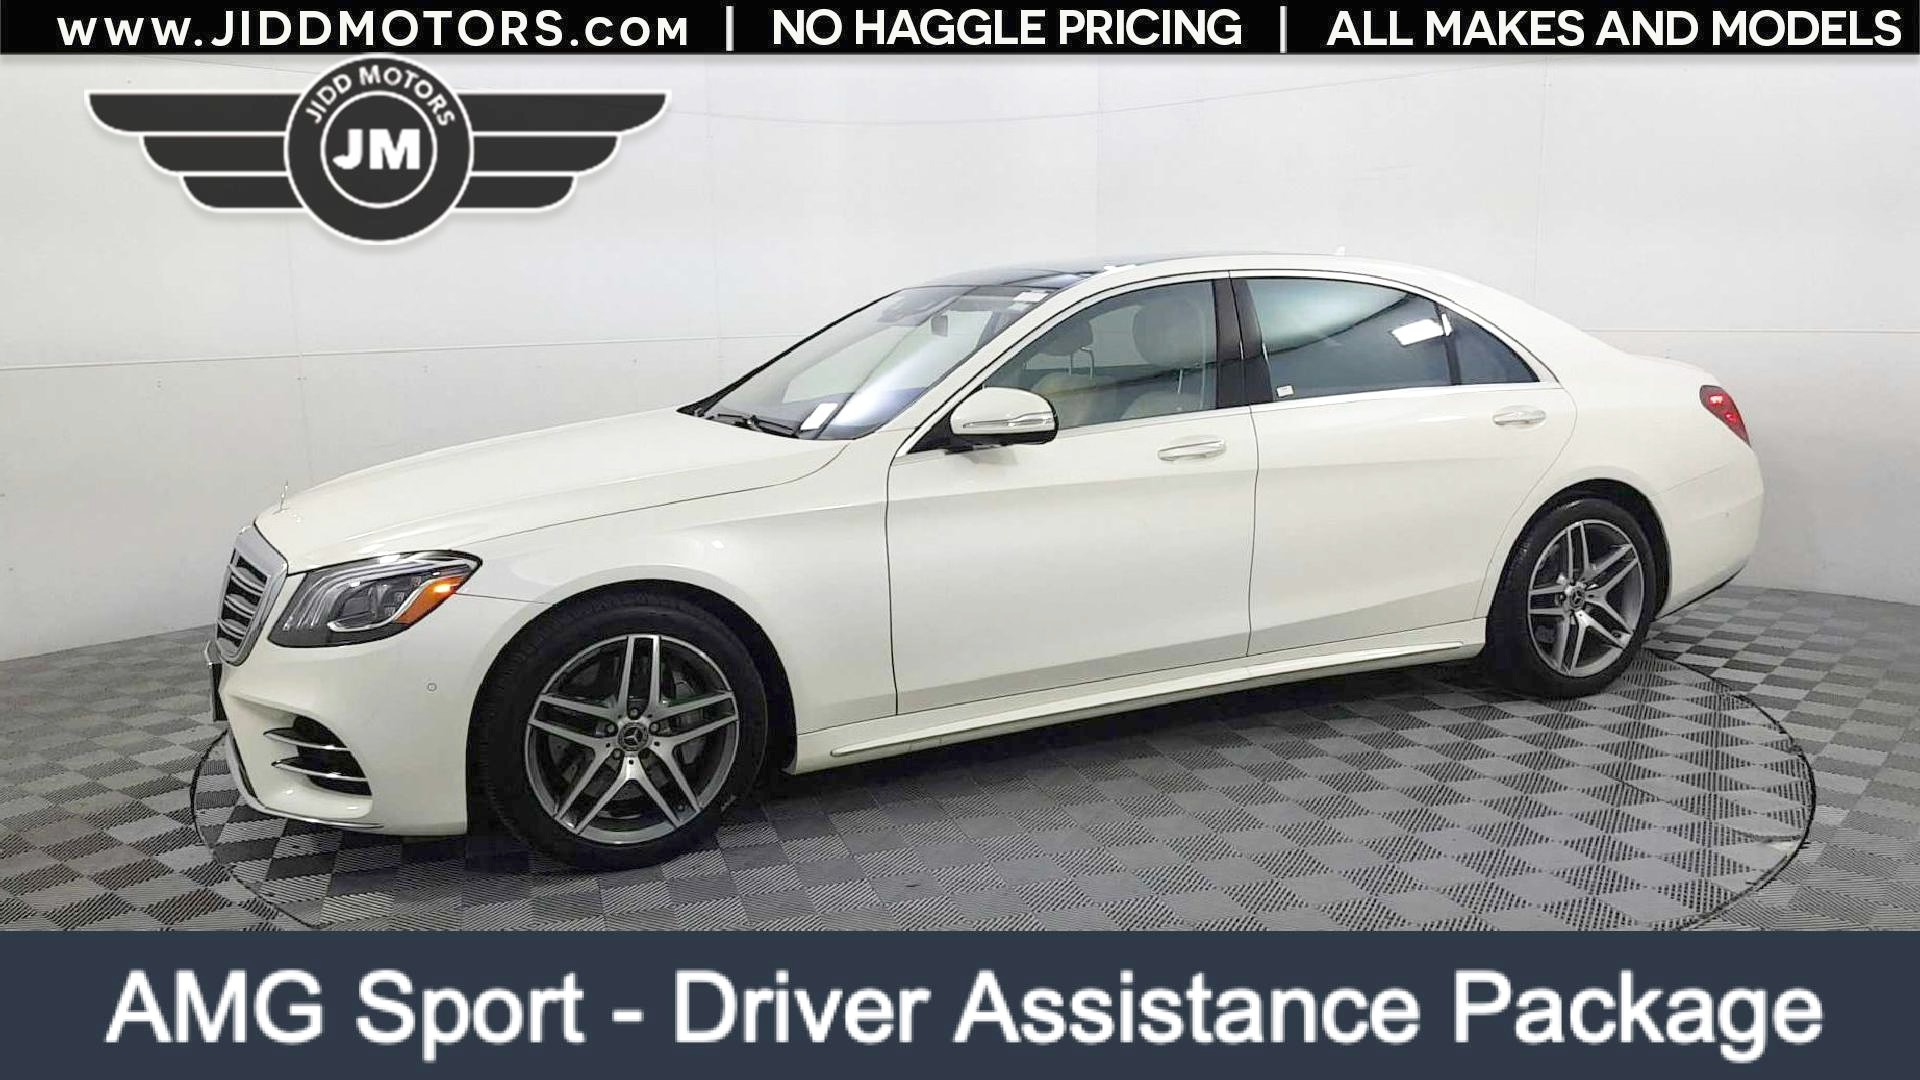 Luxury Used Mercedes-Benz for Sale in Chicago, IL - Jidd Motors